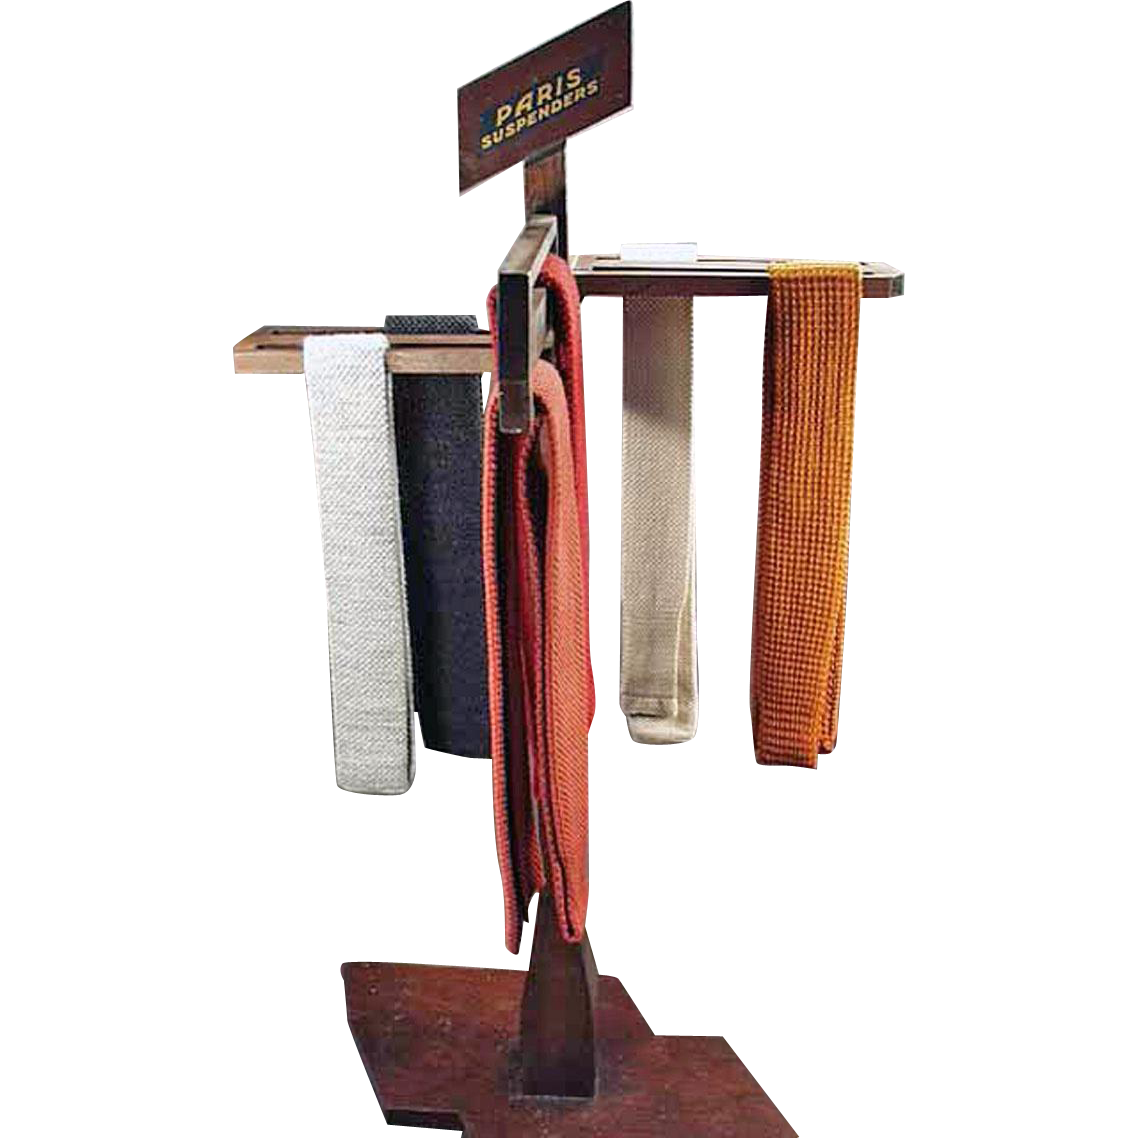 Vintage Advertising Display - Paris Suspenders - Old Wood Display Rack